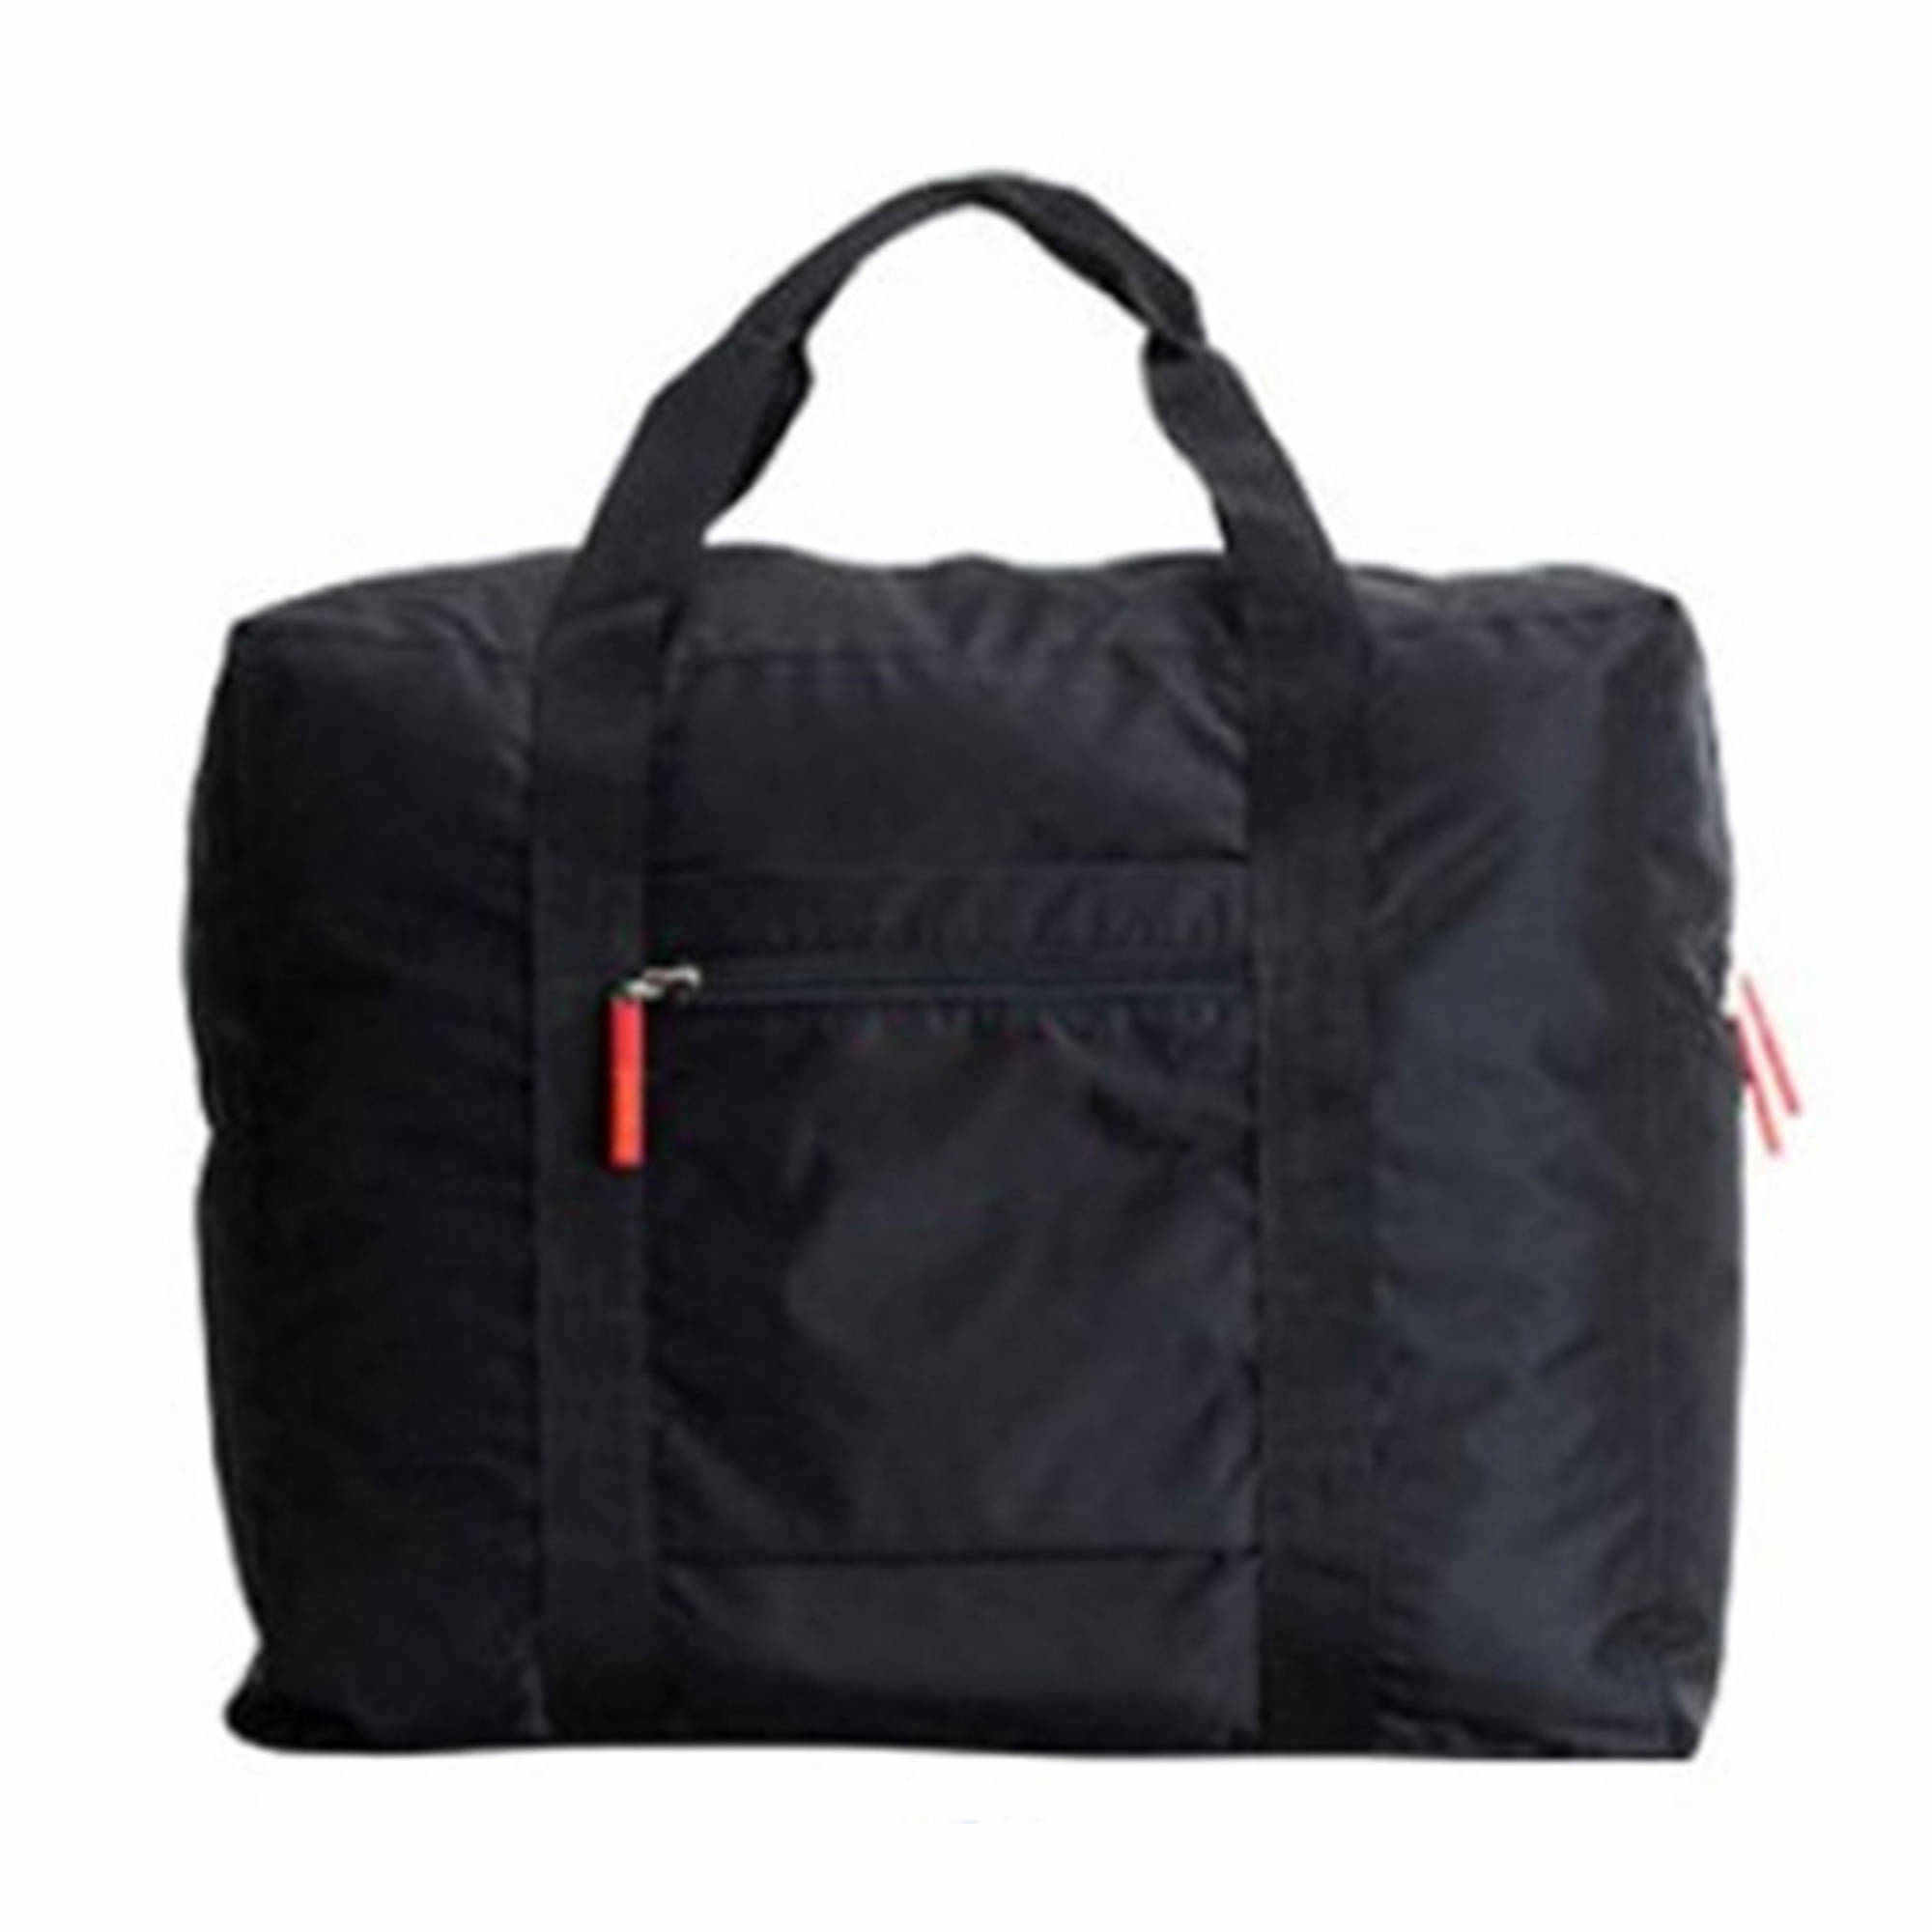 Foldable travel swagger bag organizer waterproof women and men duffle carry on luggage traveling bag